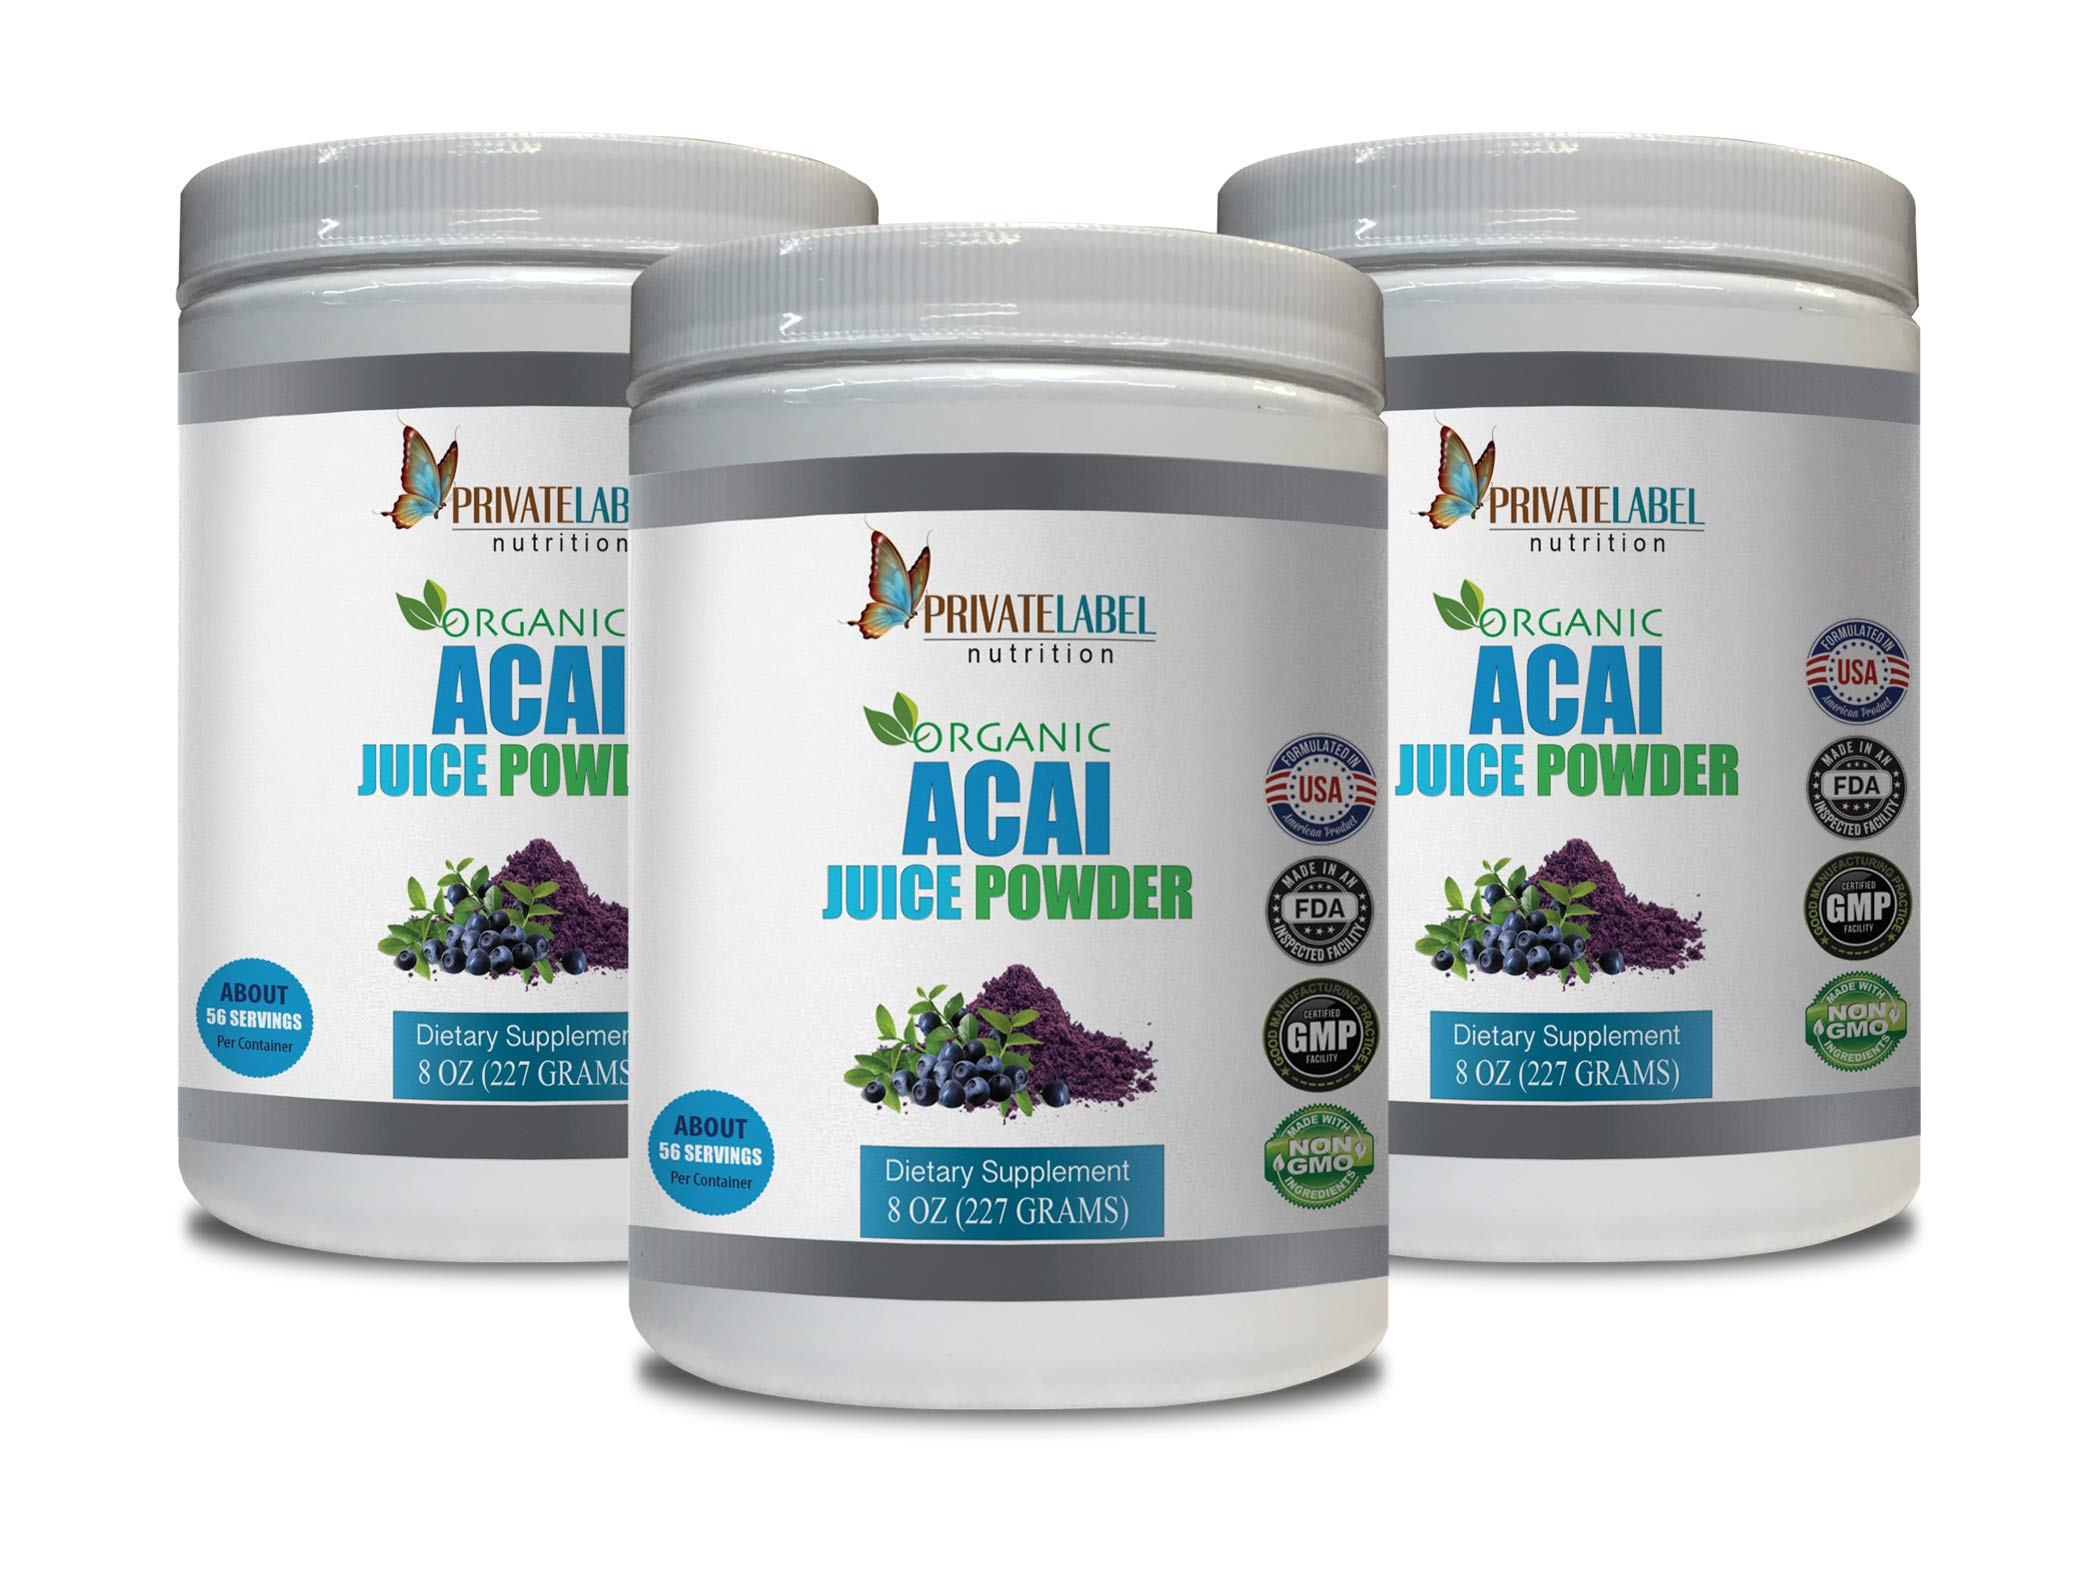 Cardiovascular Enhancement - ACAI Organic Juice Powder - Natural acai Berry Juice - 3 Cans 24 OZ (195 Servings)